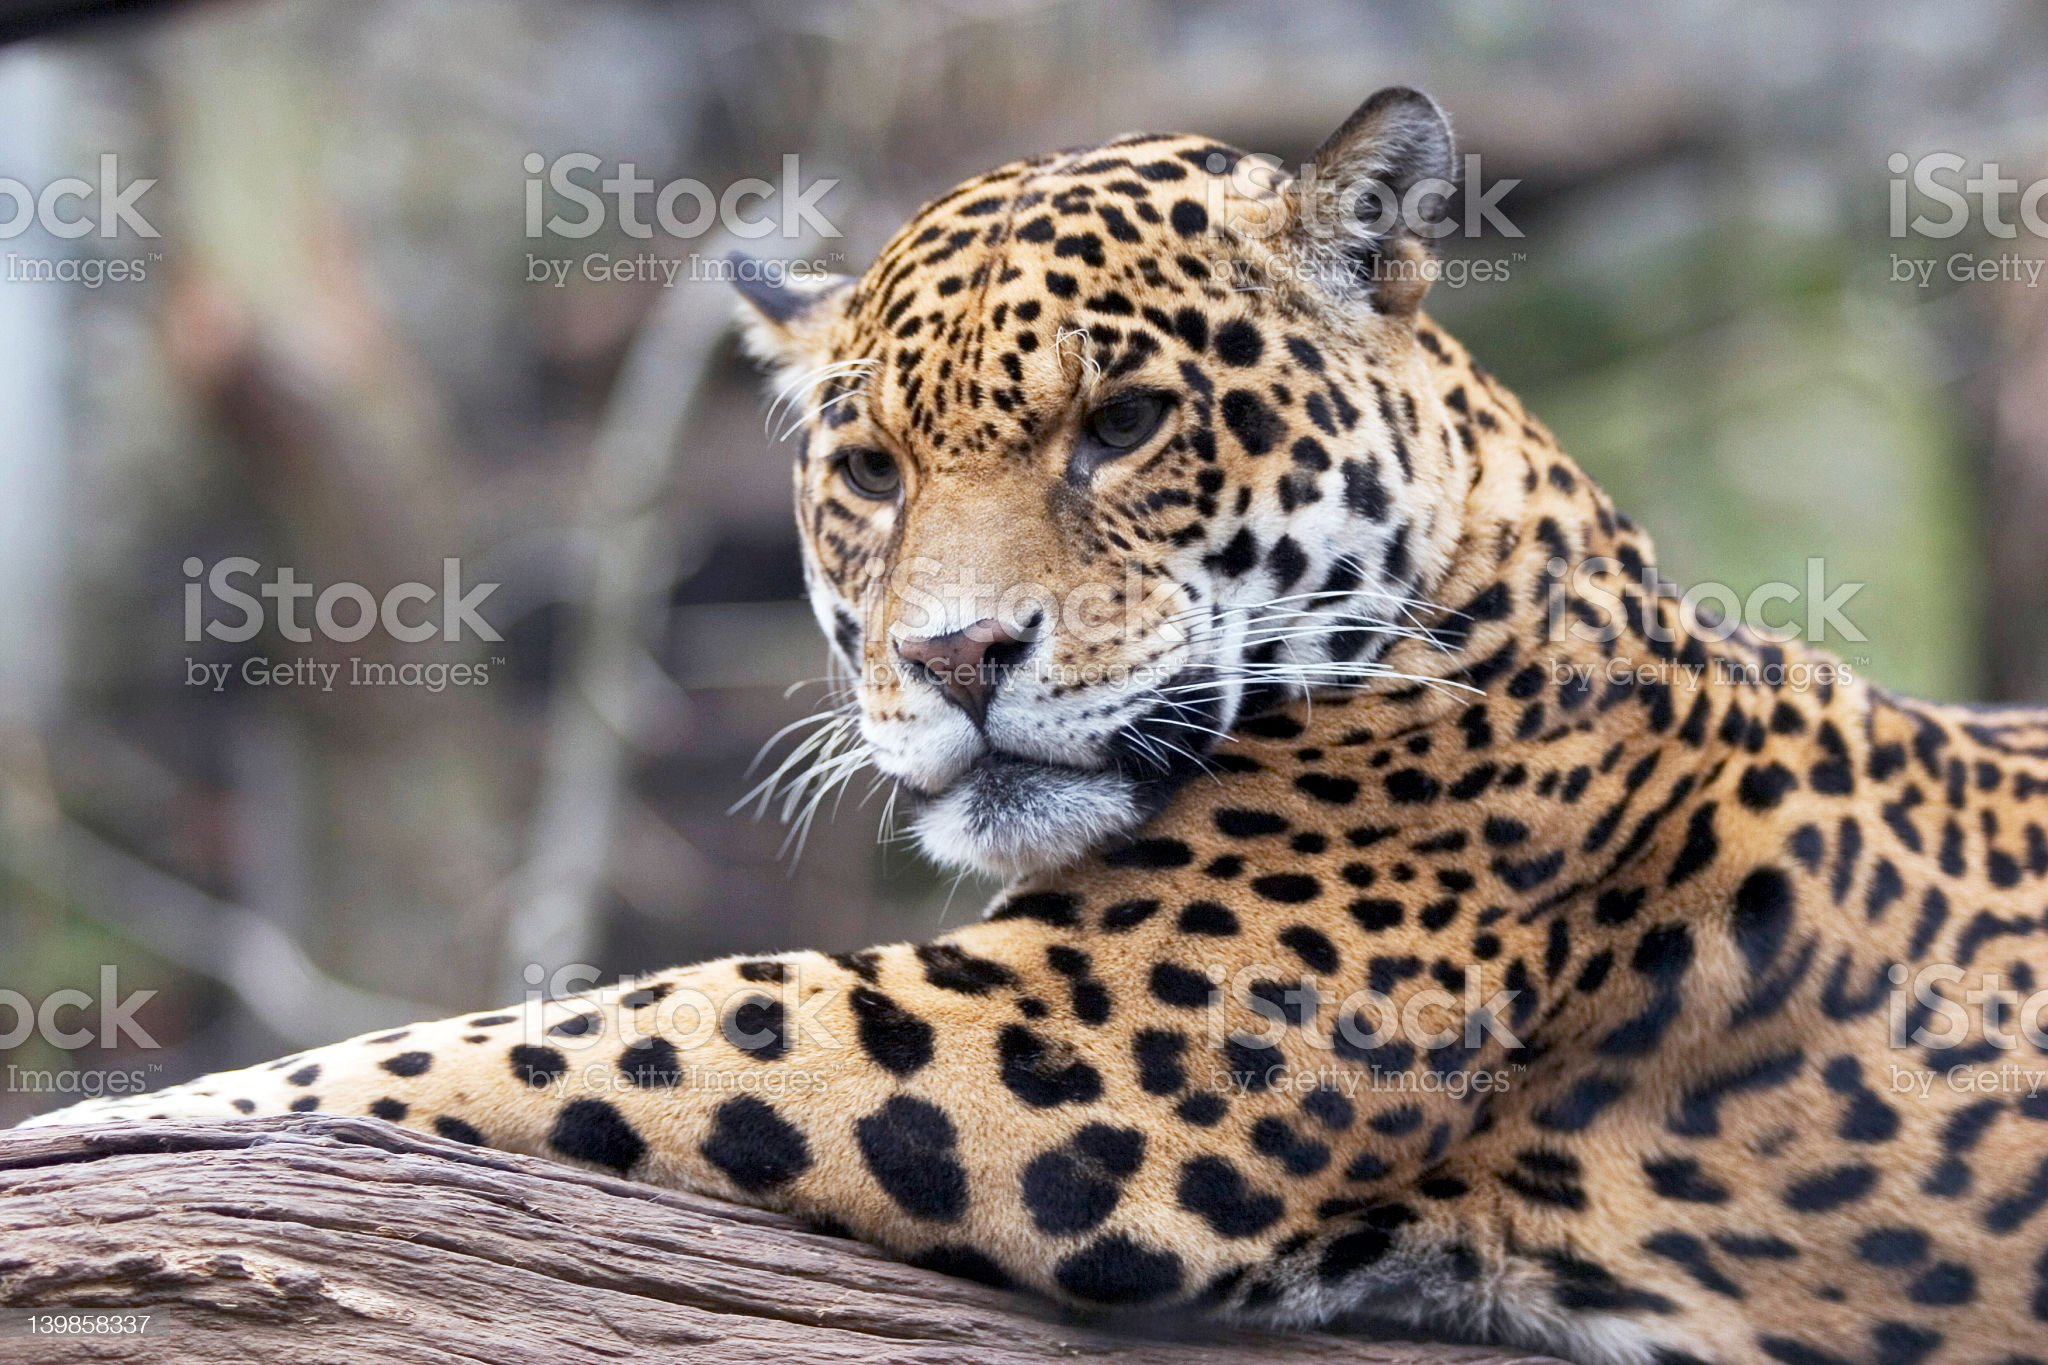 A jaguar laying on a piece of wood looking focused royalty-free stock photo